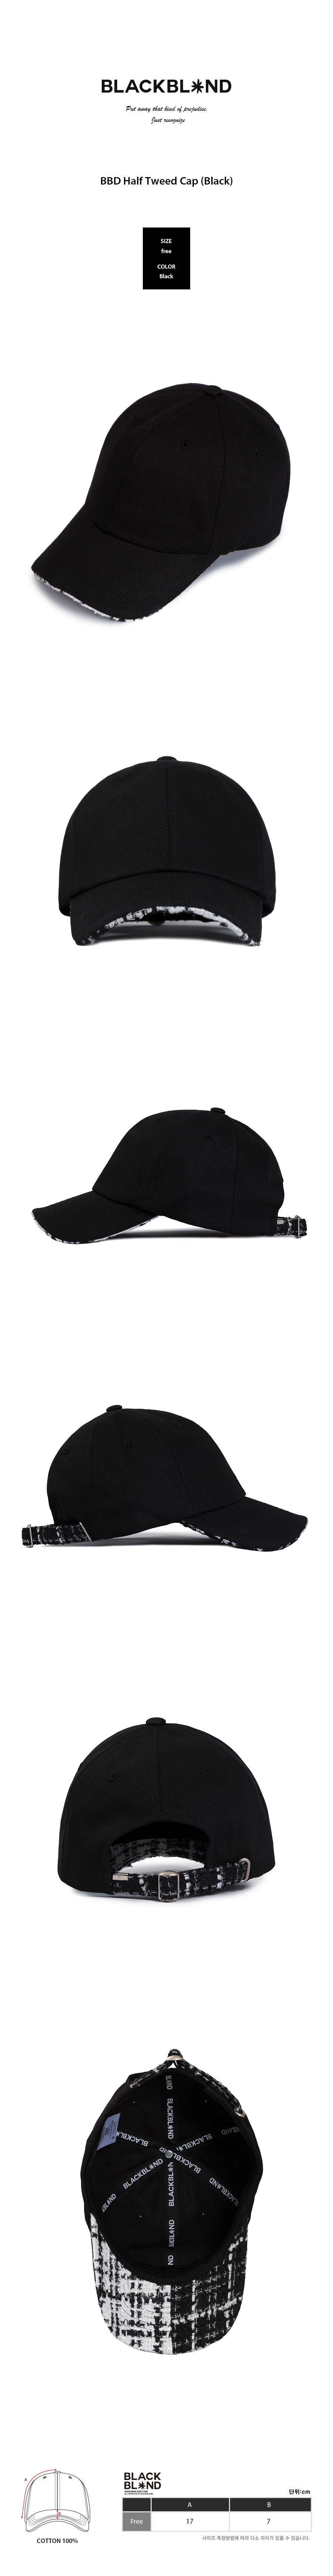 블랙블론드 BLACKBLOND - BBD Half Tweed Cap (Black)